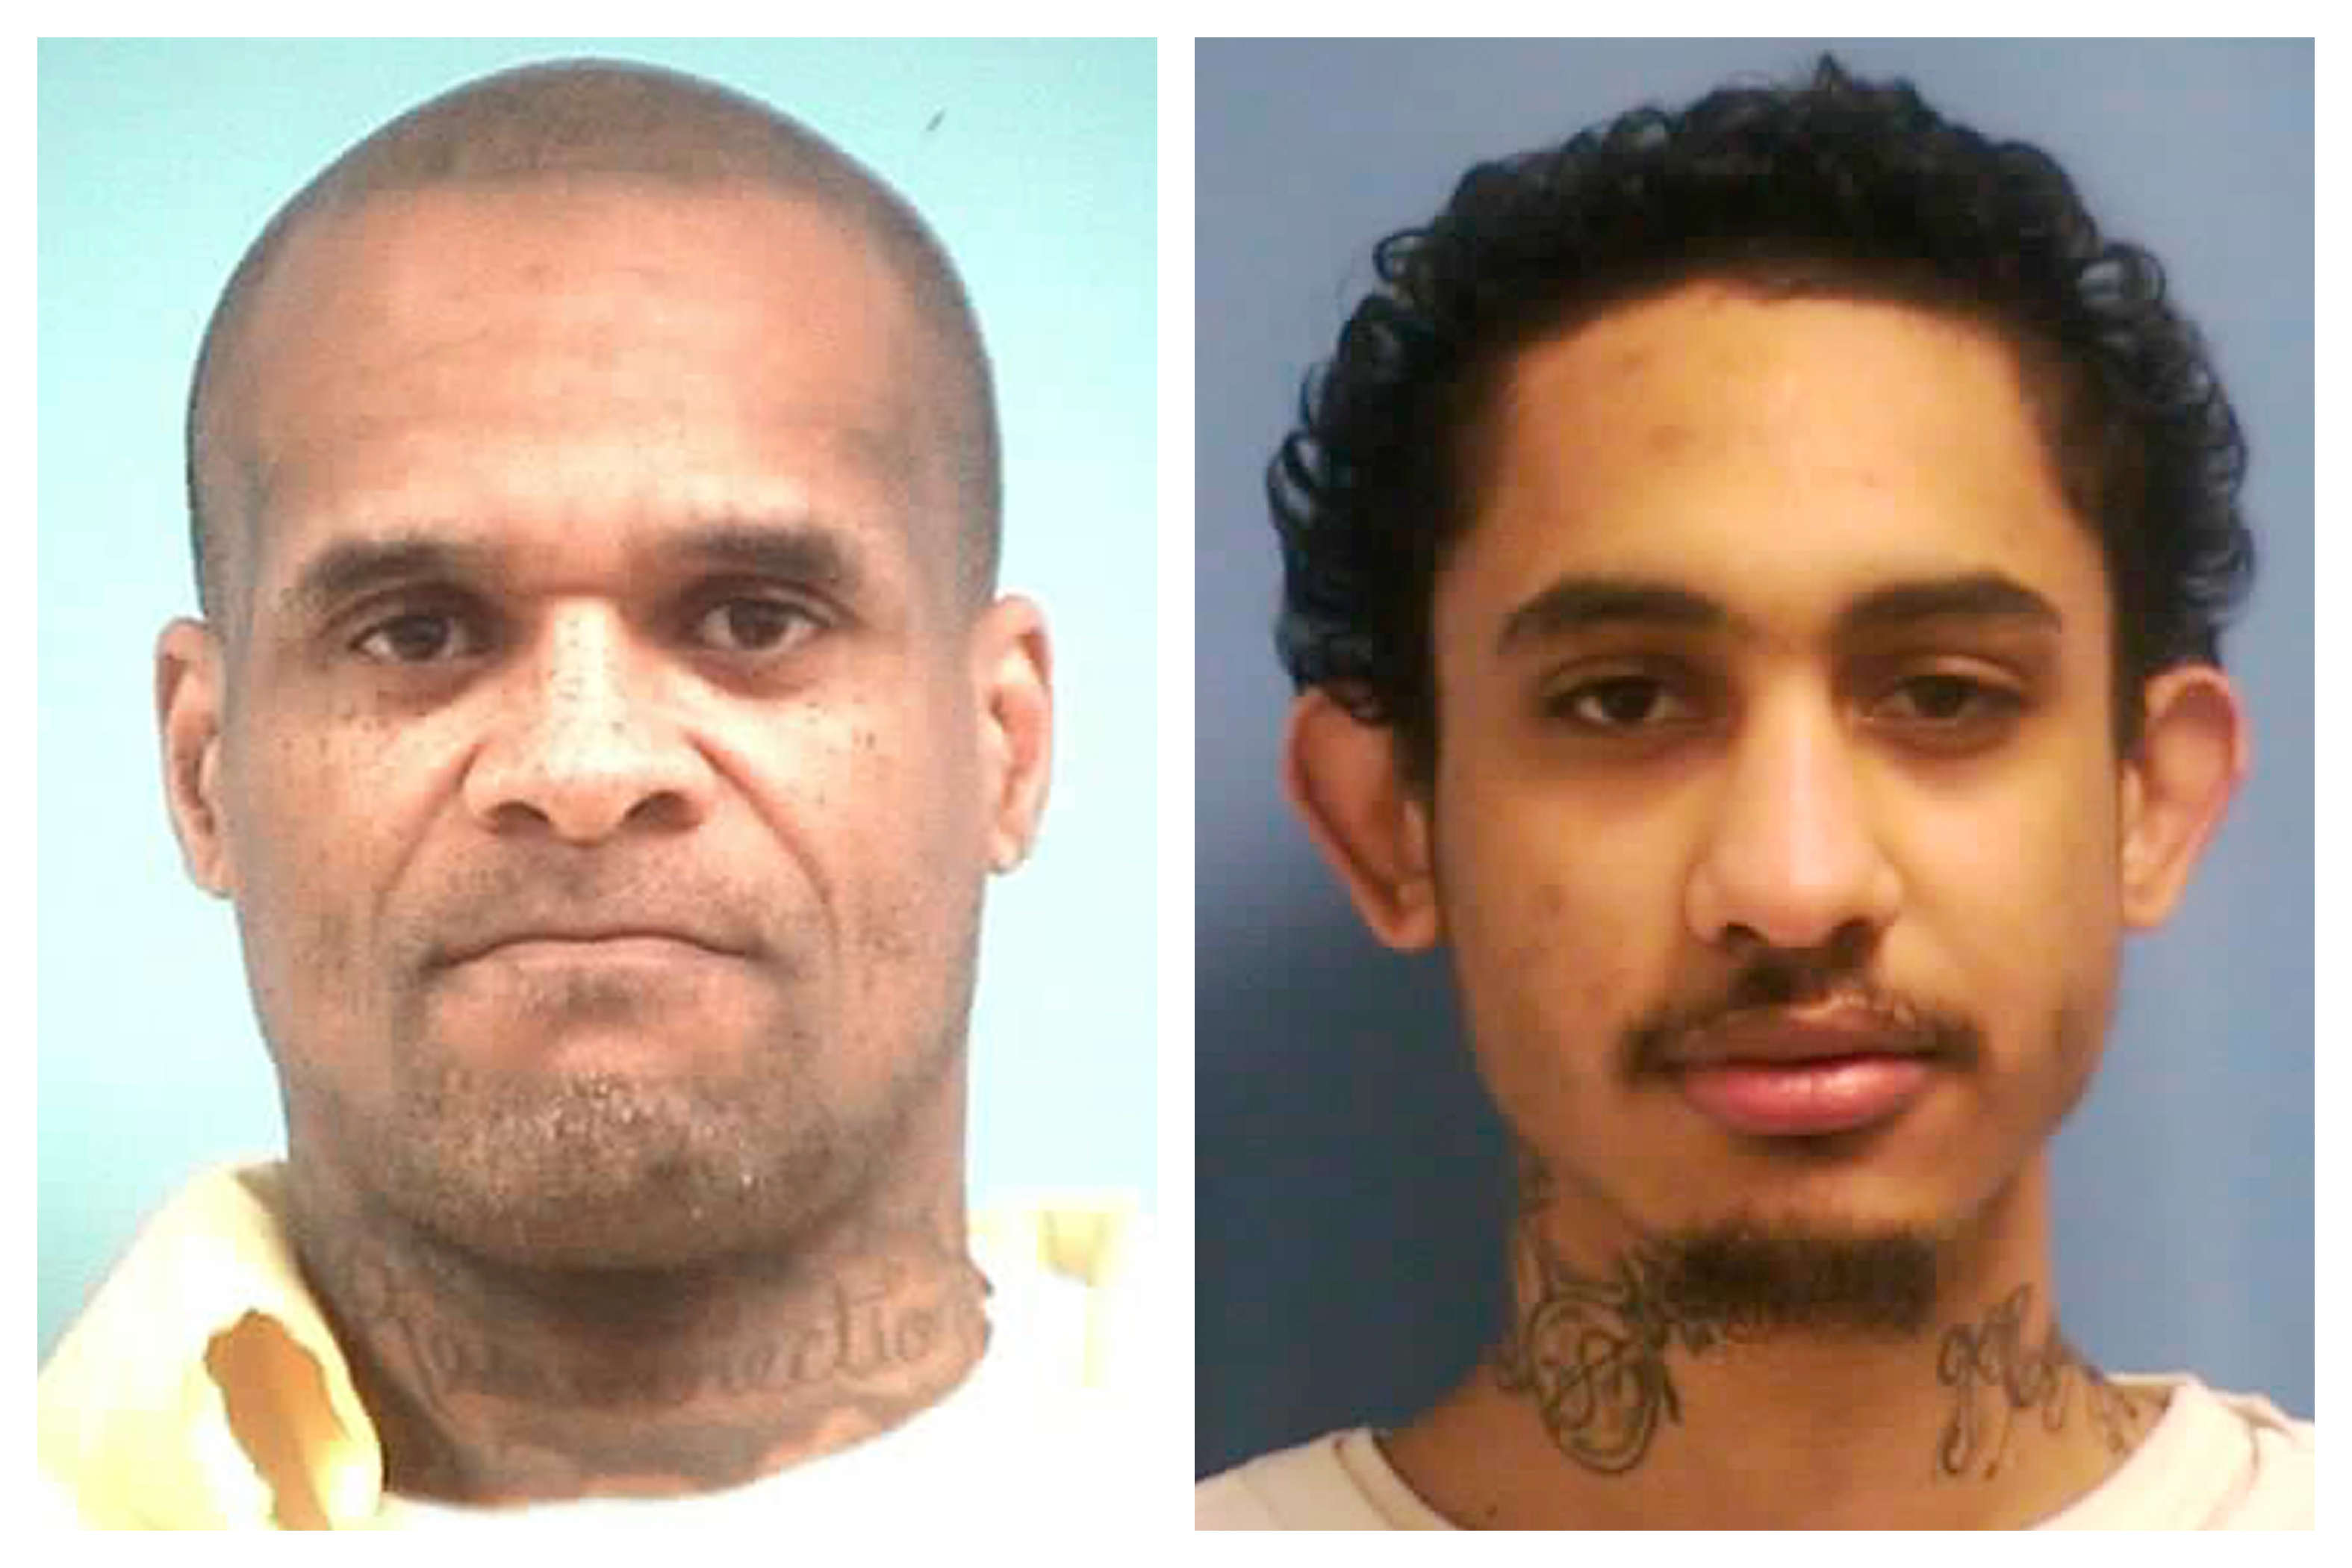 This combination of photos made available by the Mississippi Department of Corrections shows inmates David May, 42, and Dillion Williams, 27, on Jan. 4, 2020.